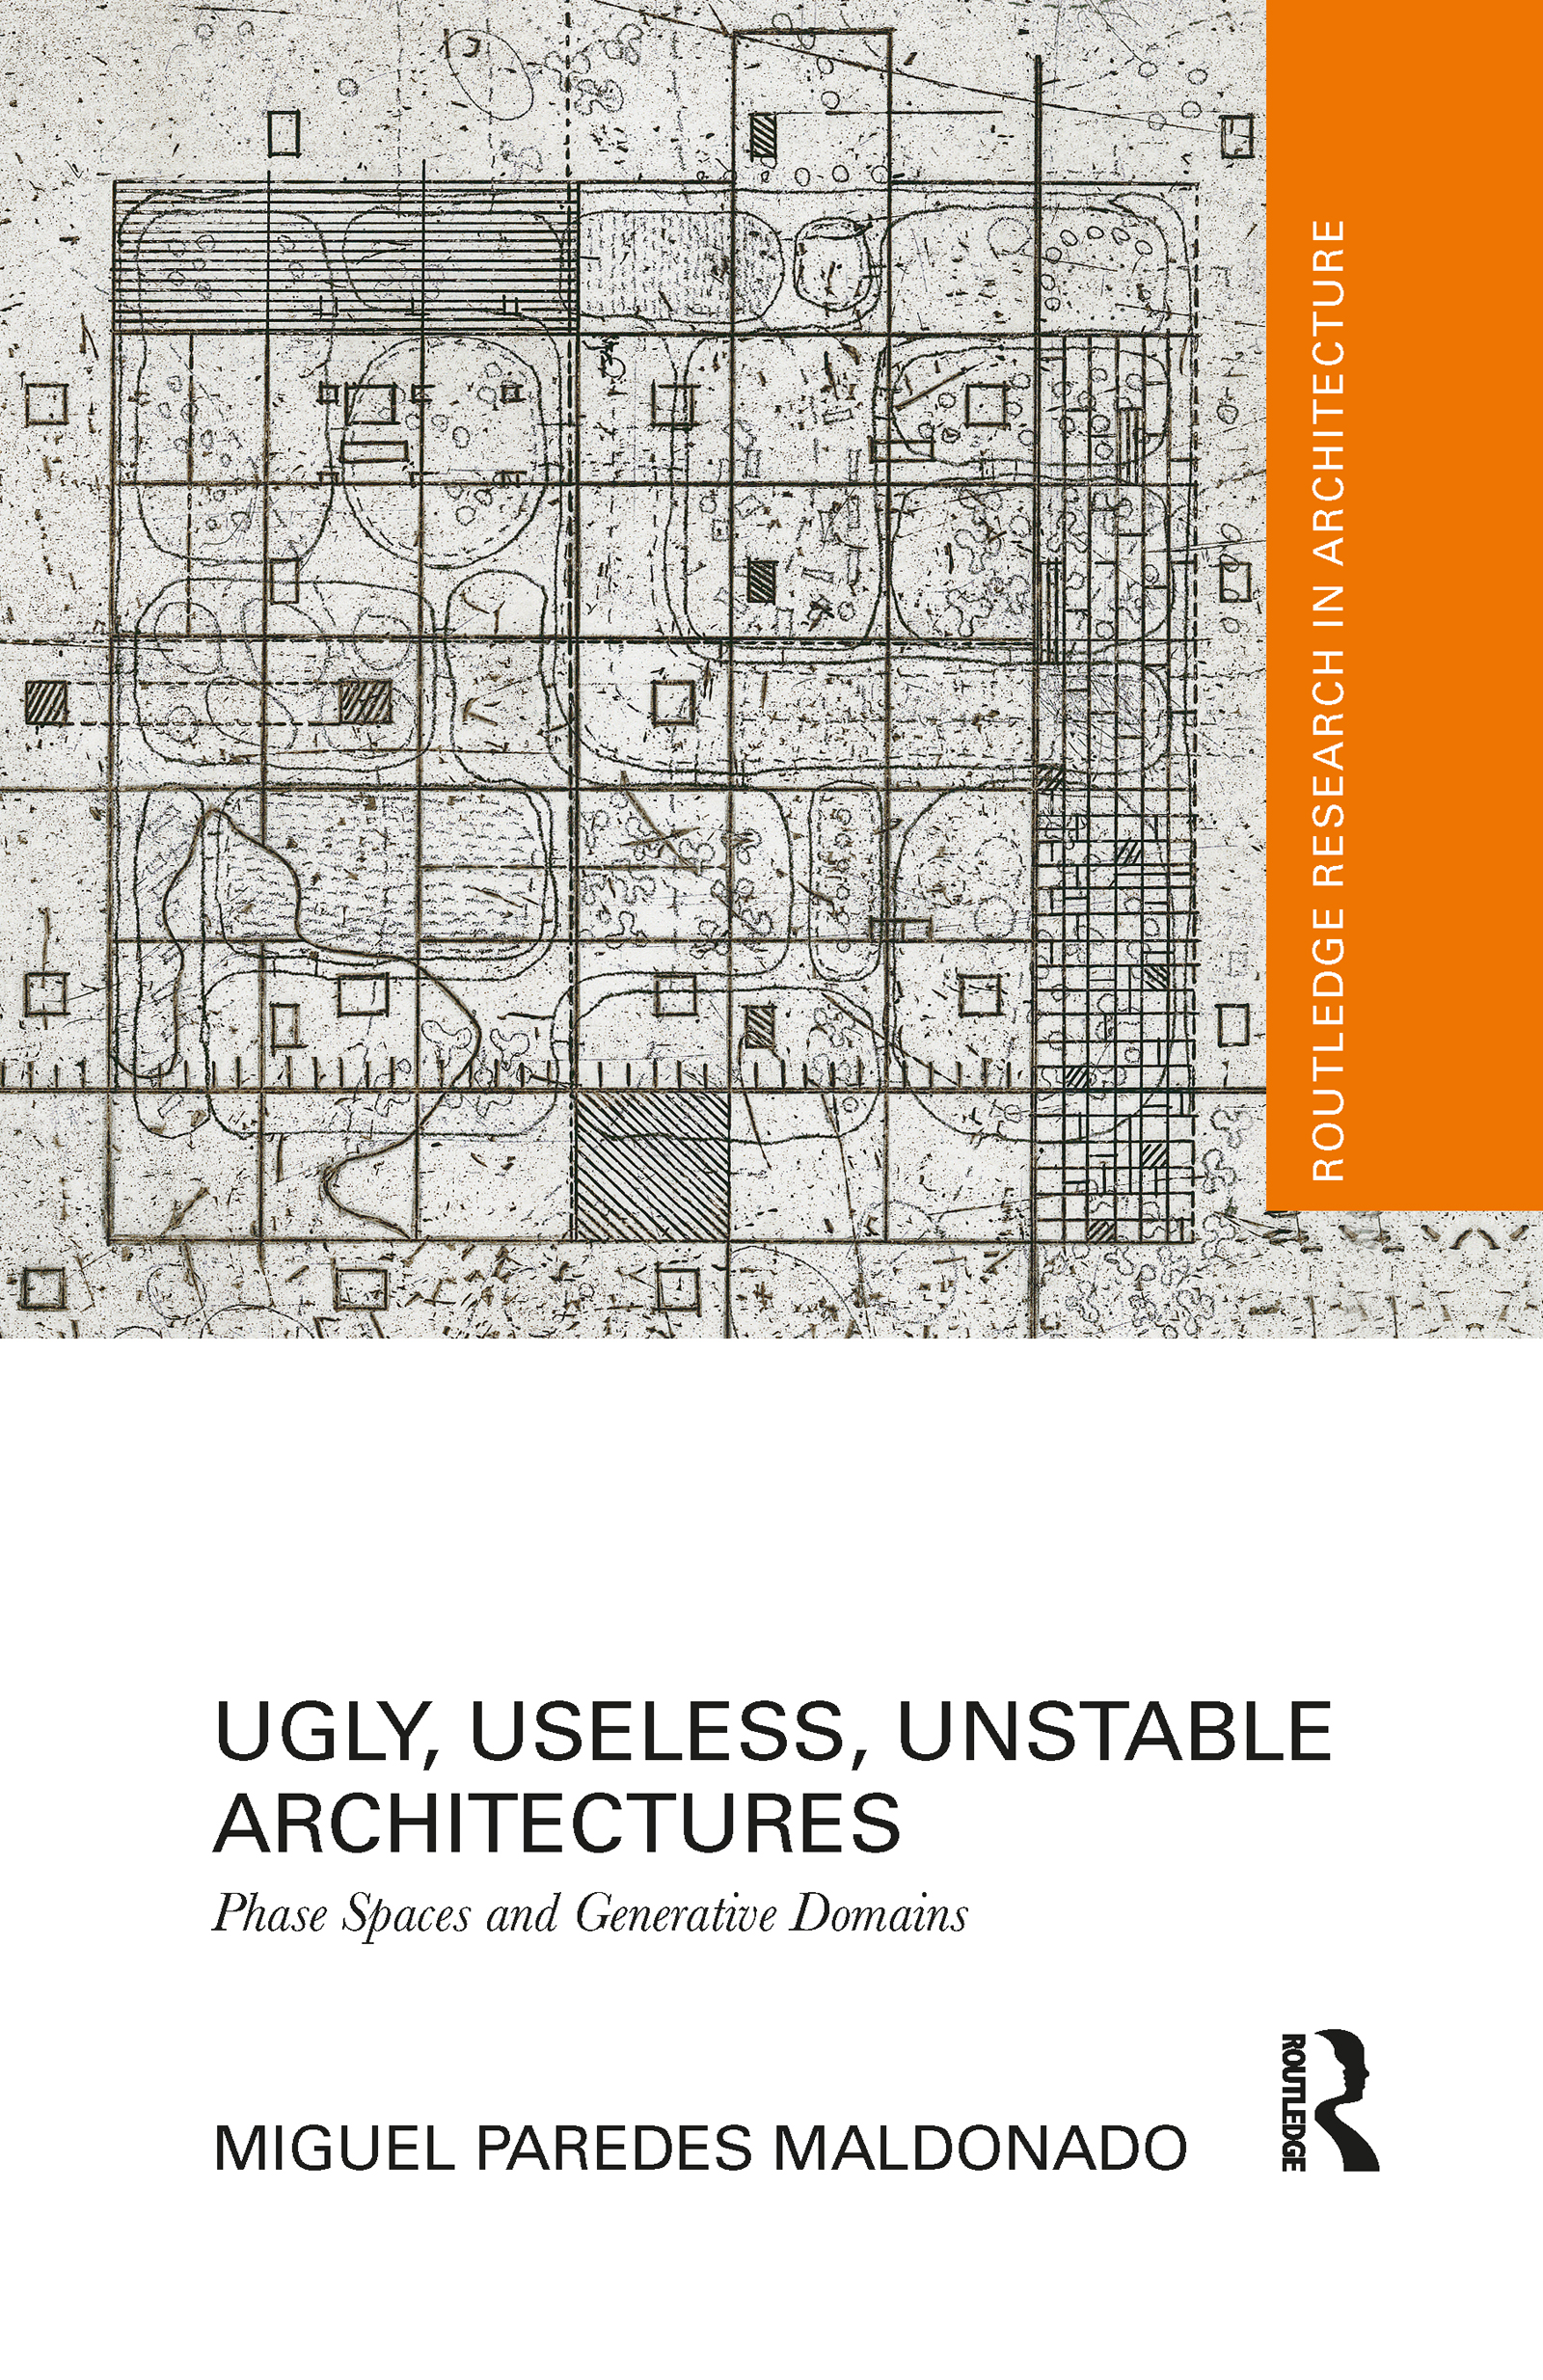 Ugly, Useless, Unstable Architectures